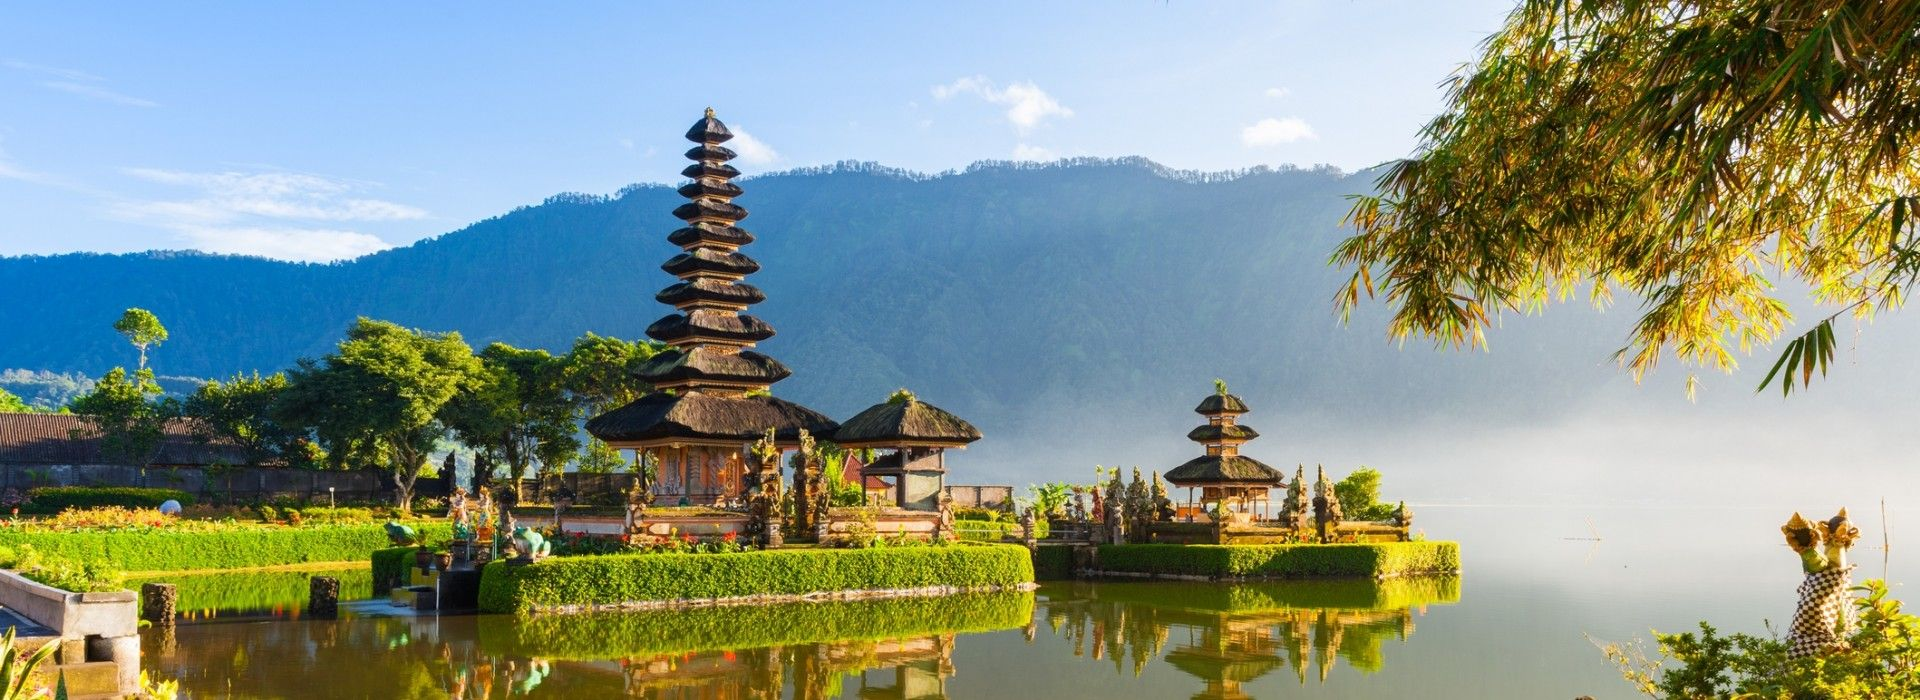 Cultural, religious and historic sites Tours in Ubud